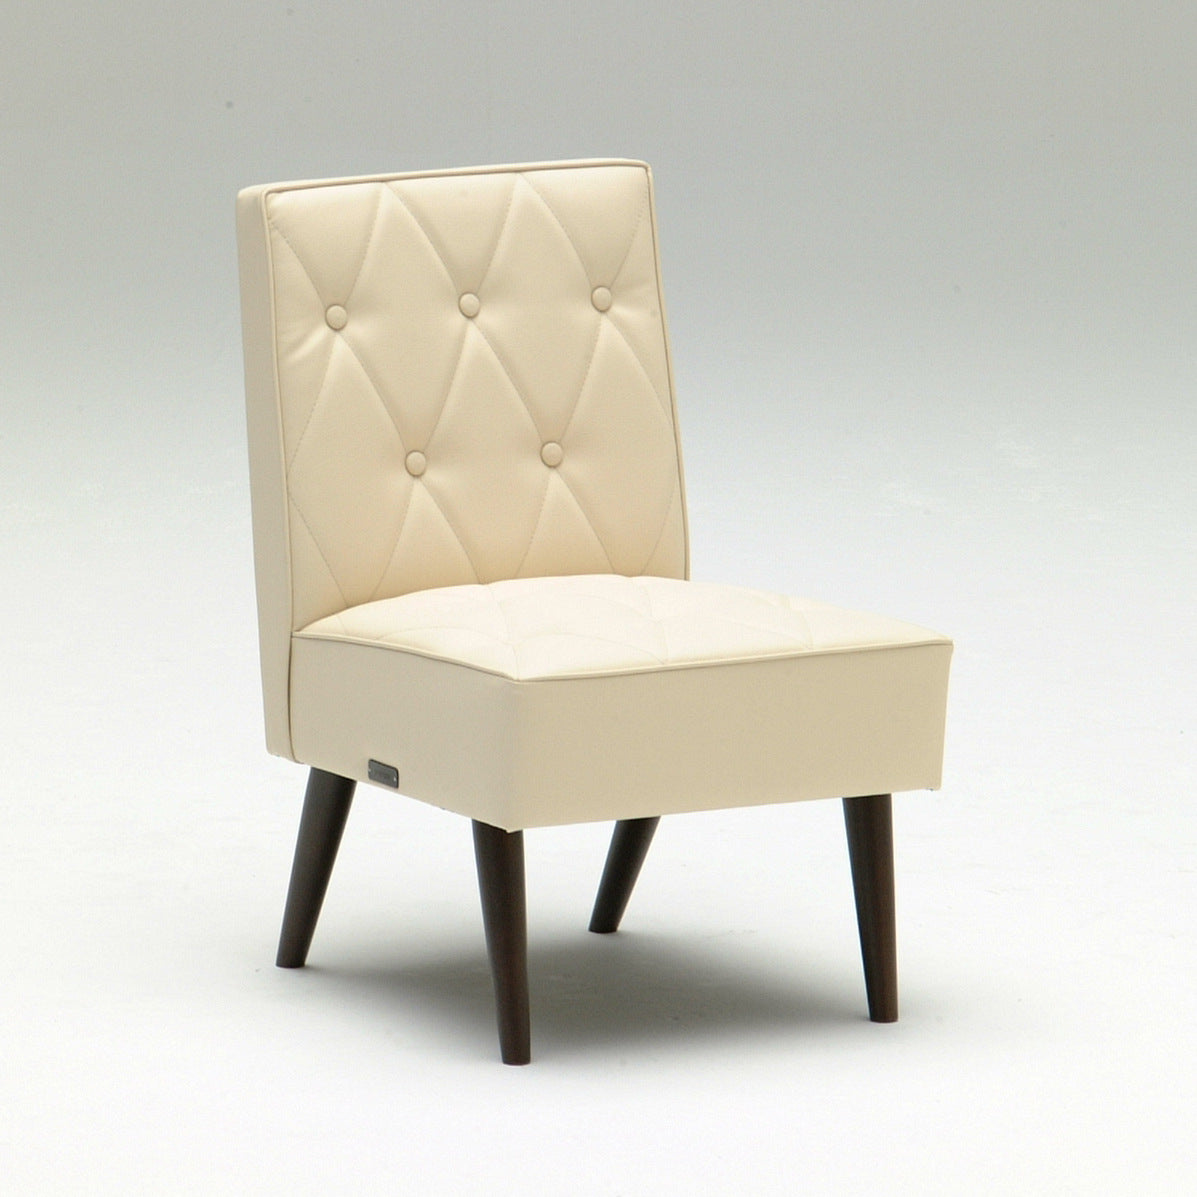 Karimoku60 - cafe chair standerd ivory